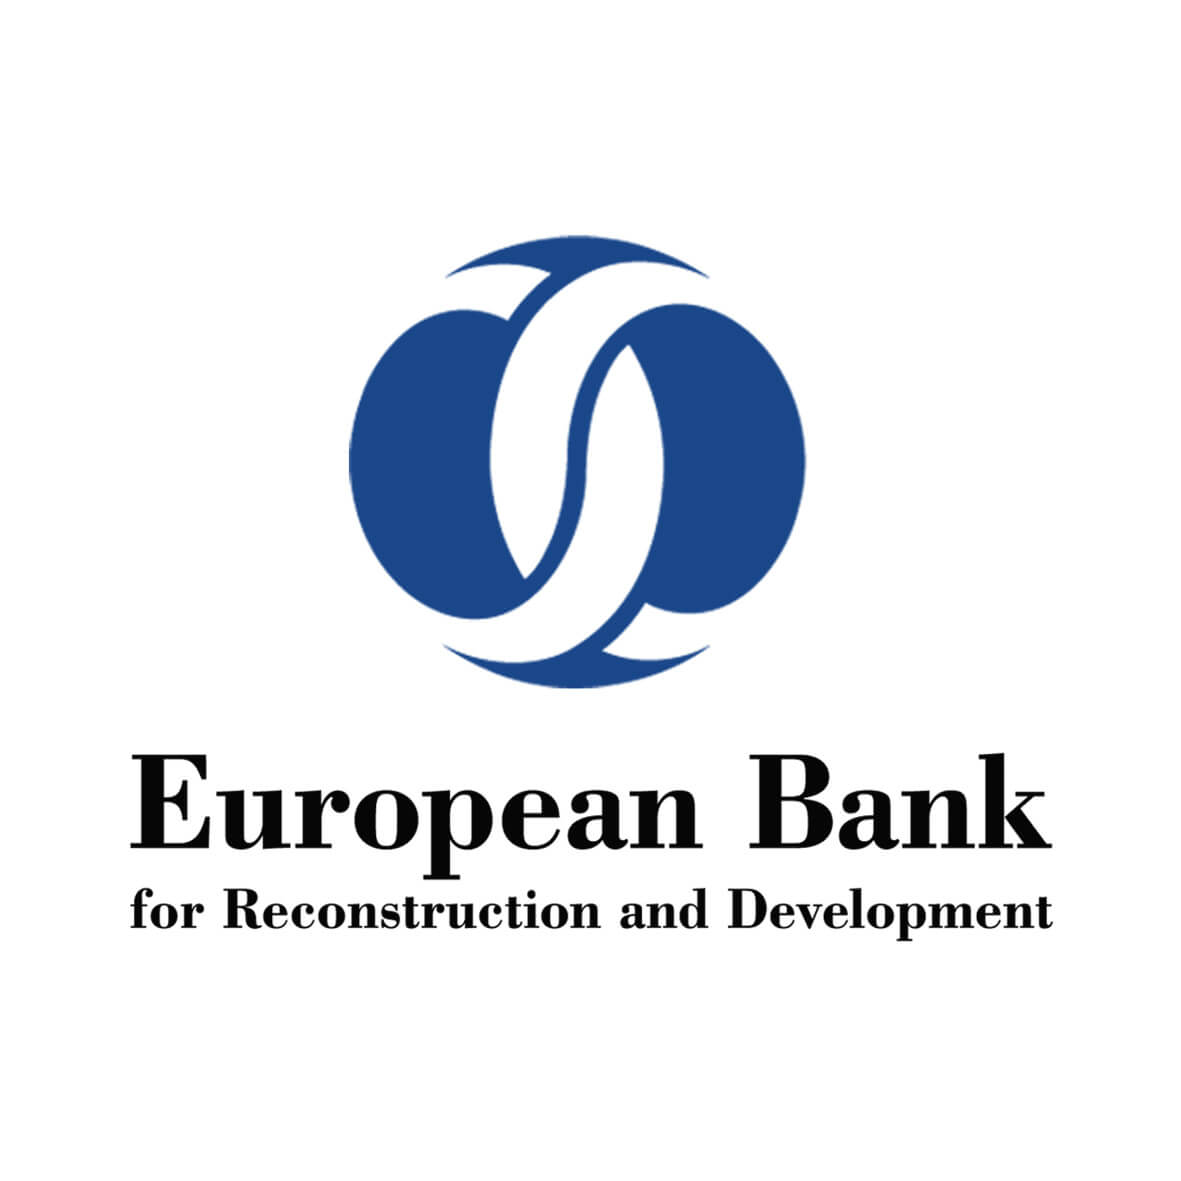 European Bank for Reconstruction and Development (EBRD)